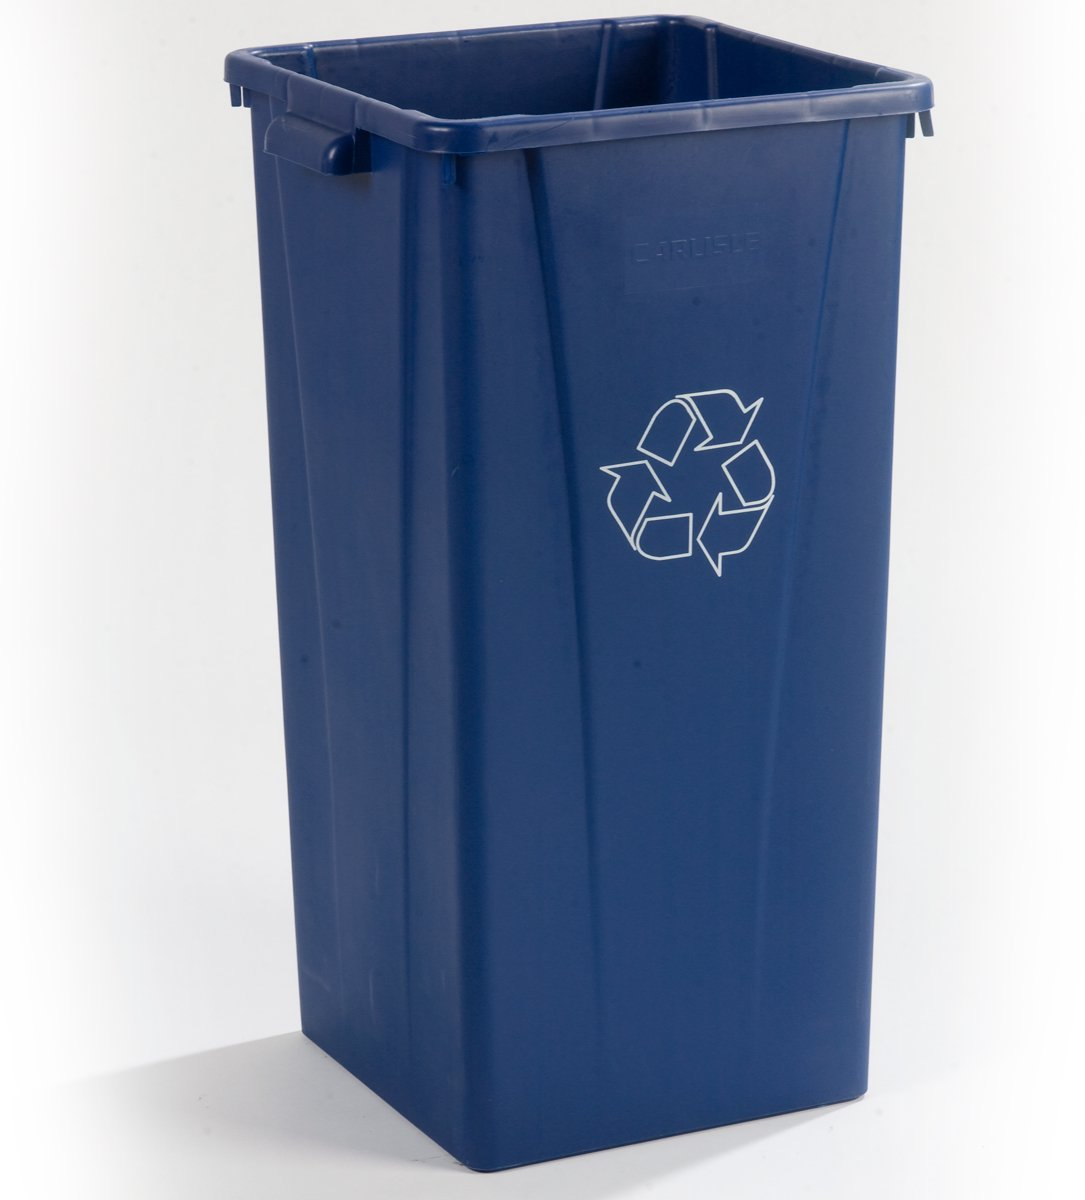 Carlisle 343523REC14 Centurian LLDPE Tall Square Recycle Waste Container, 23-gal. Capacity, 15.29 x 16.22 x 28'', Blue (Case of 4) by Carlisle